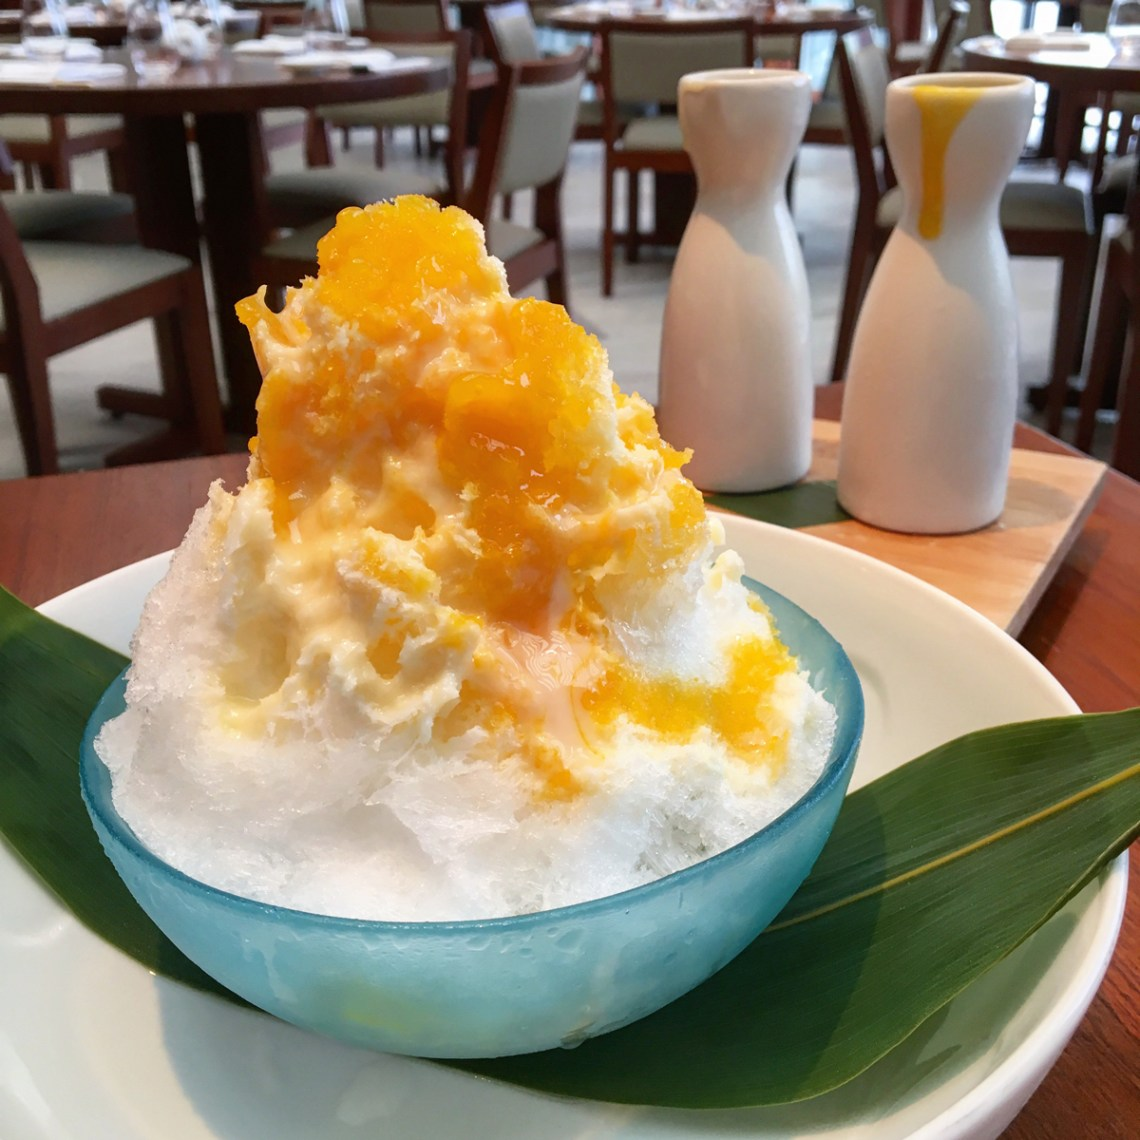 Nobu Miami at Eden Roc Hotel prix-fixe menu Mt. Fiji shaved ice dessert with Mango Sauce, Condensed Milk and Yogurt - this is AMAZING!